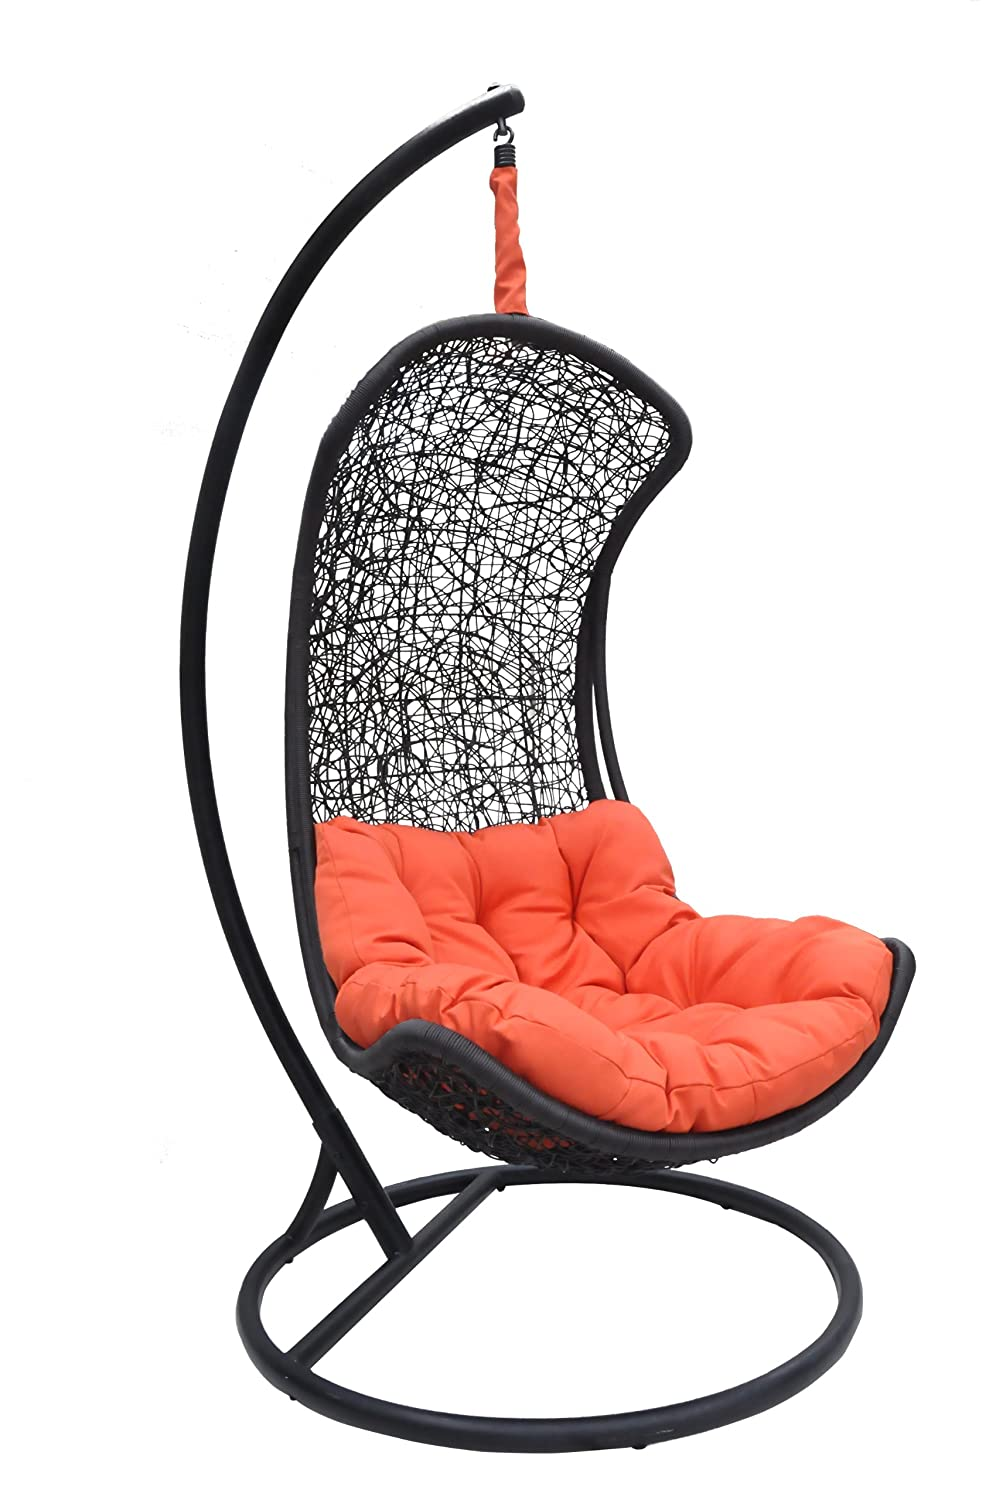 Amazon.com : Clove - Balance Curve Porch Swing Chair - Model - Y9091Bk :  Hammocks : Garden & Outdoor